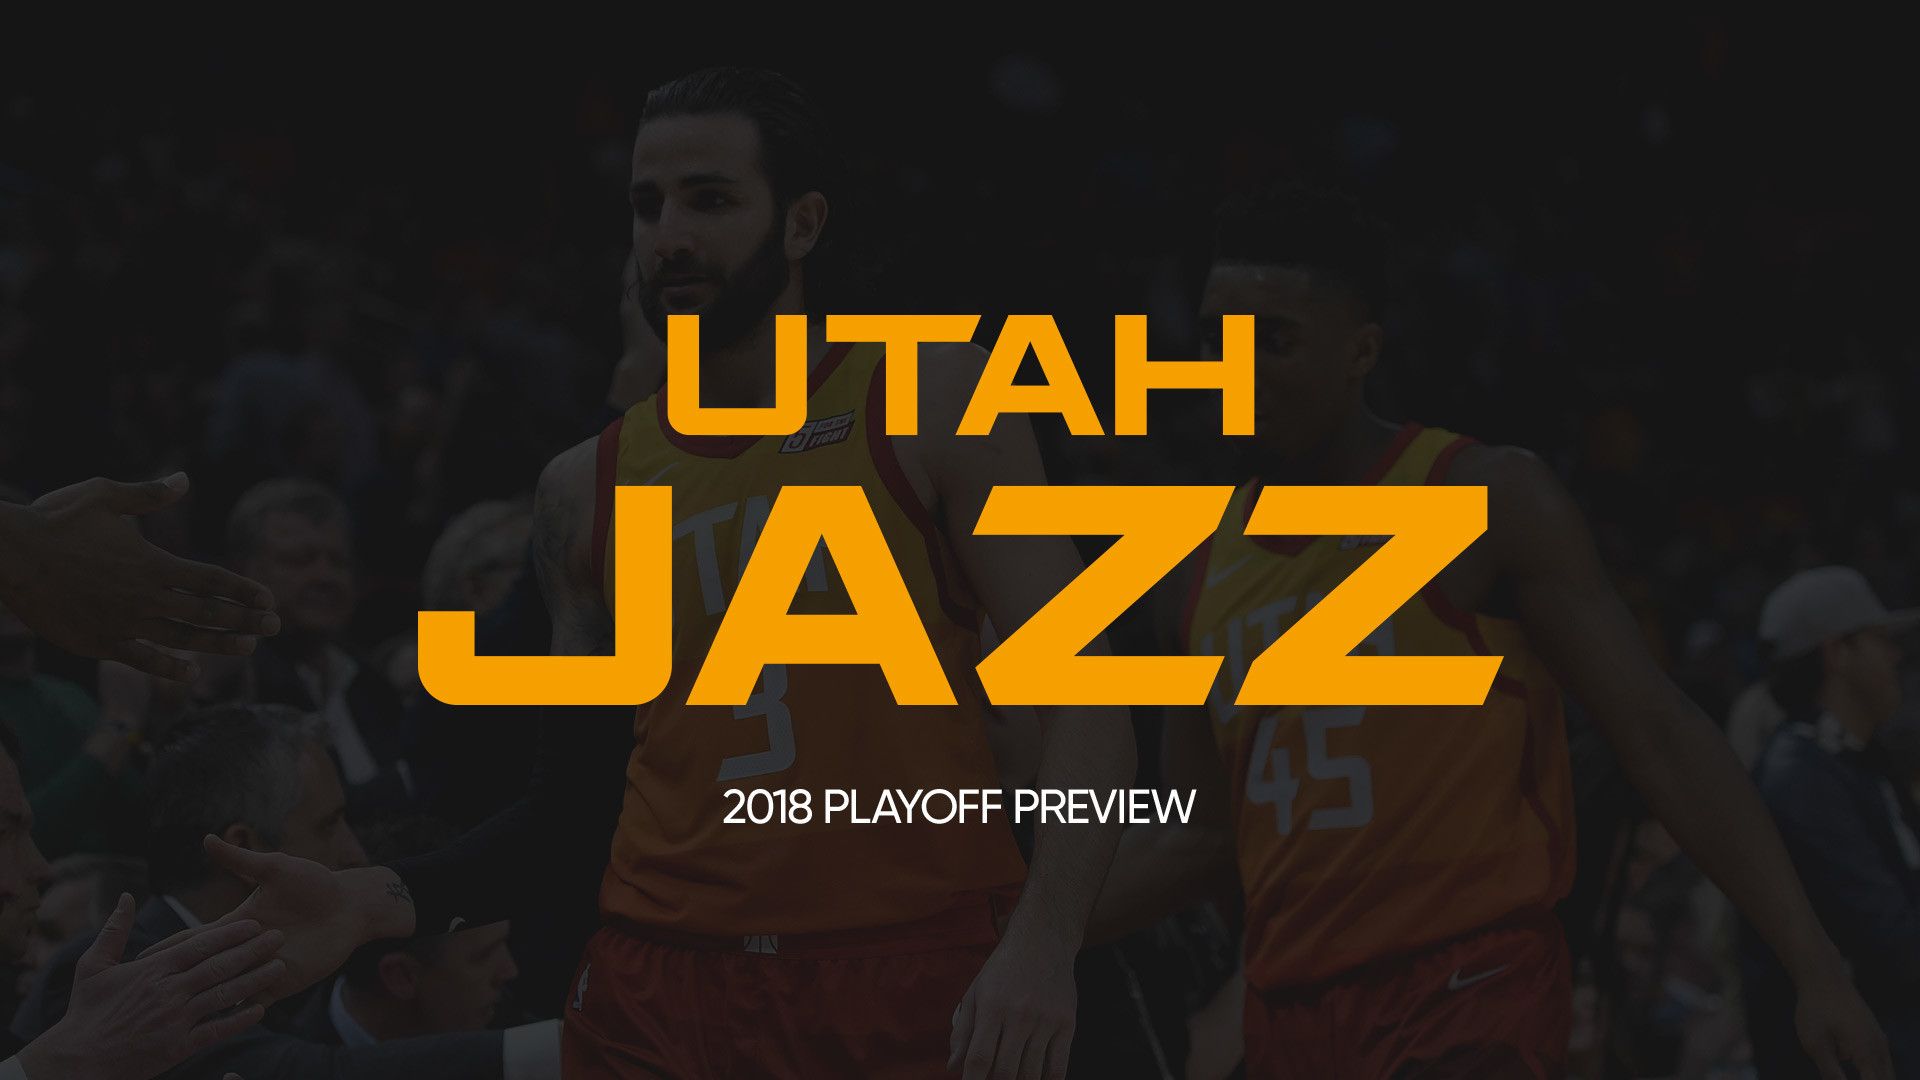 Res: 1920x1080, Utah Jazz 2018 Playoff Preview